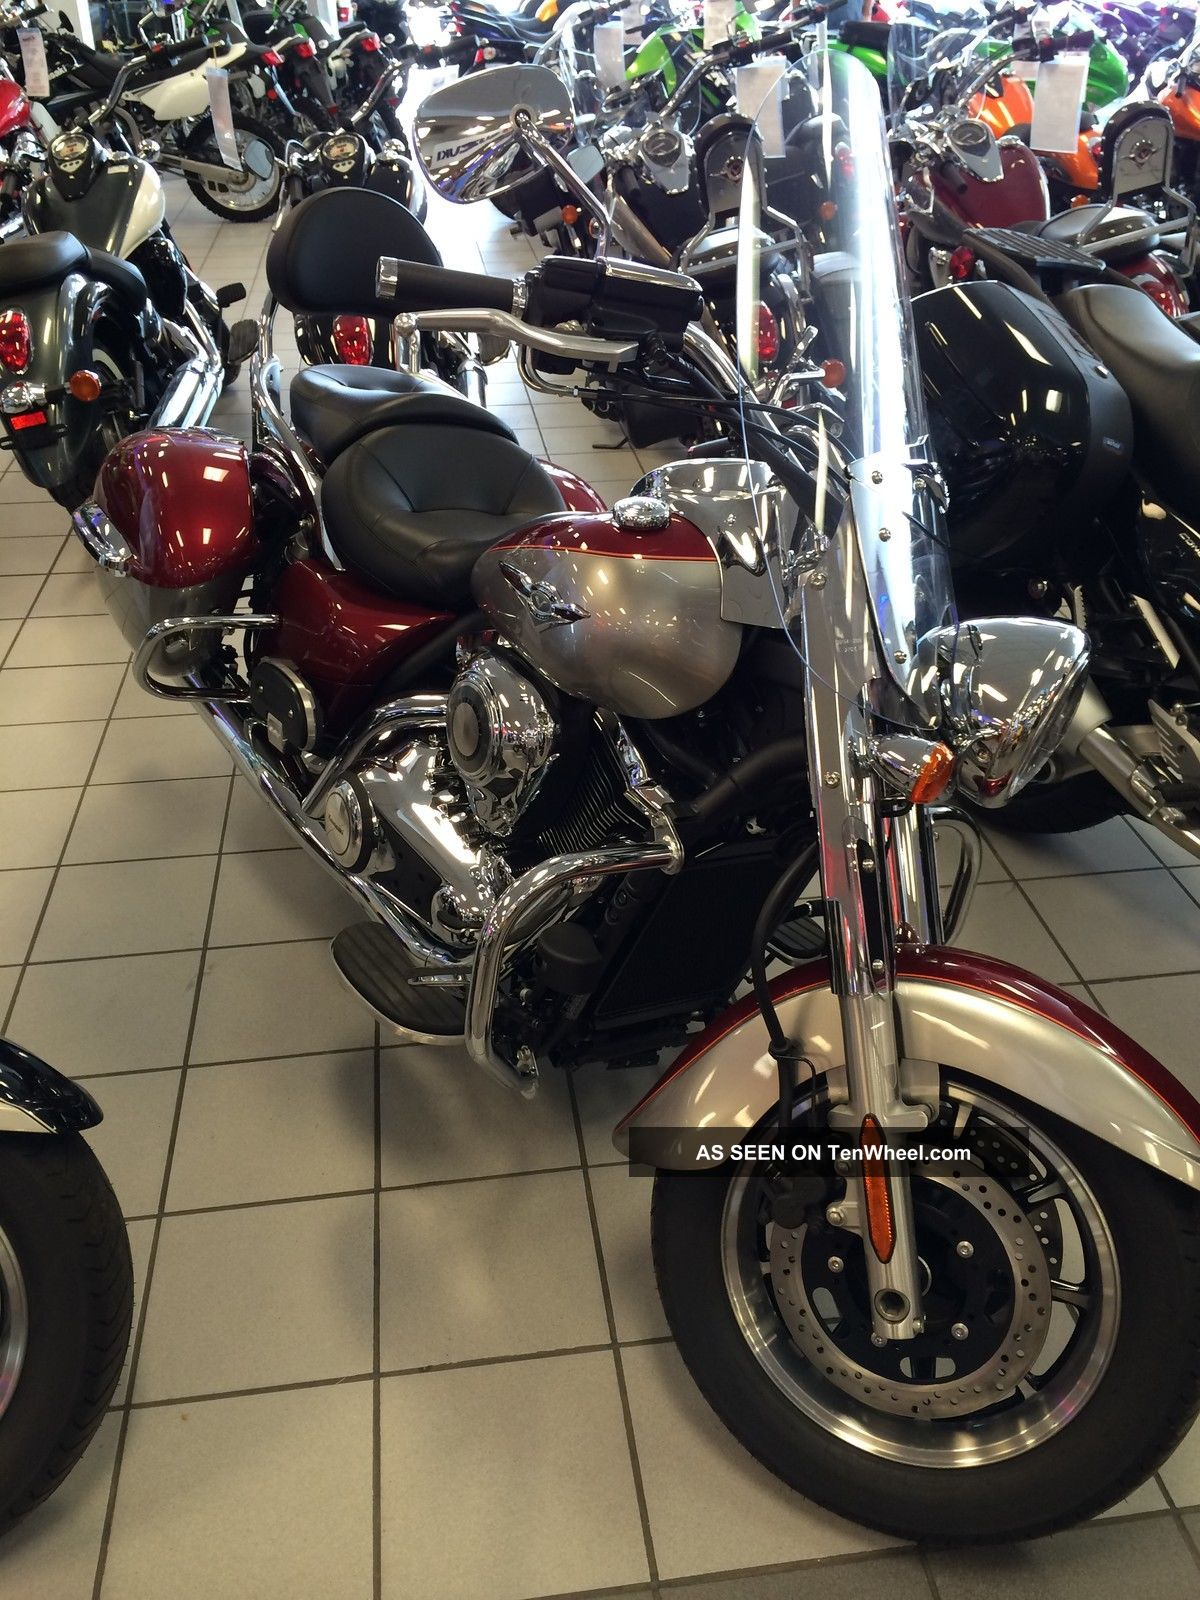 2012 Kawasaki Vulcan 1700 Nomad Red Vn1700ccf Vulcan photo